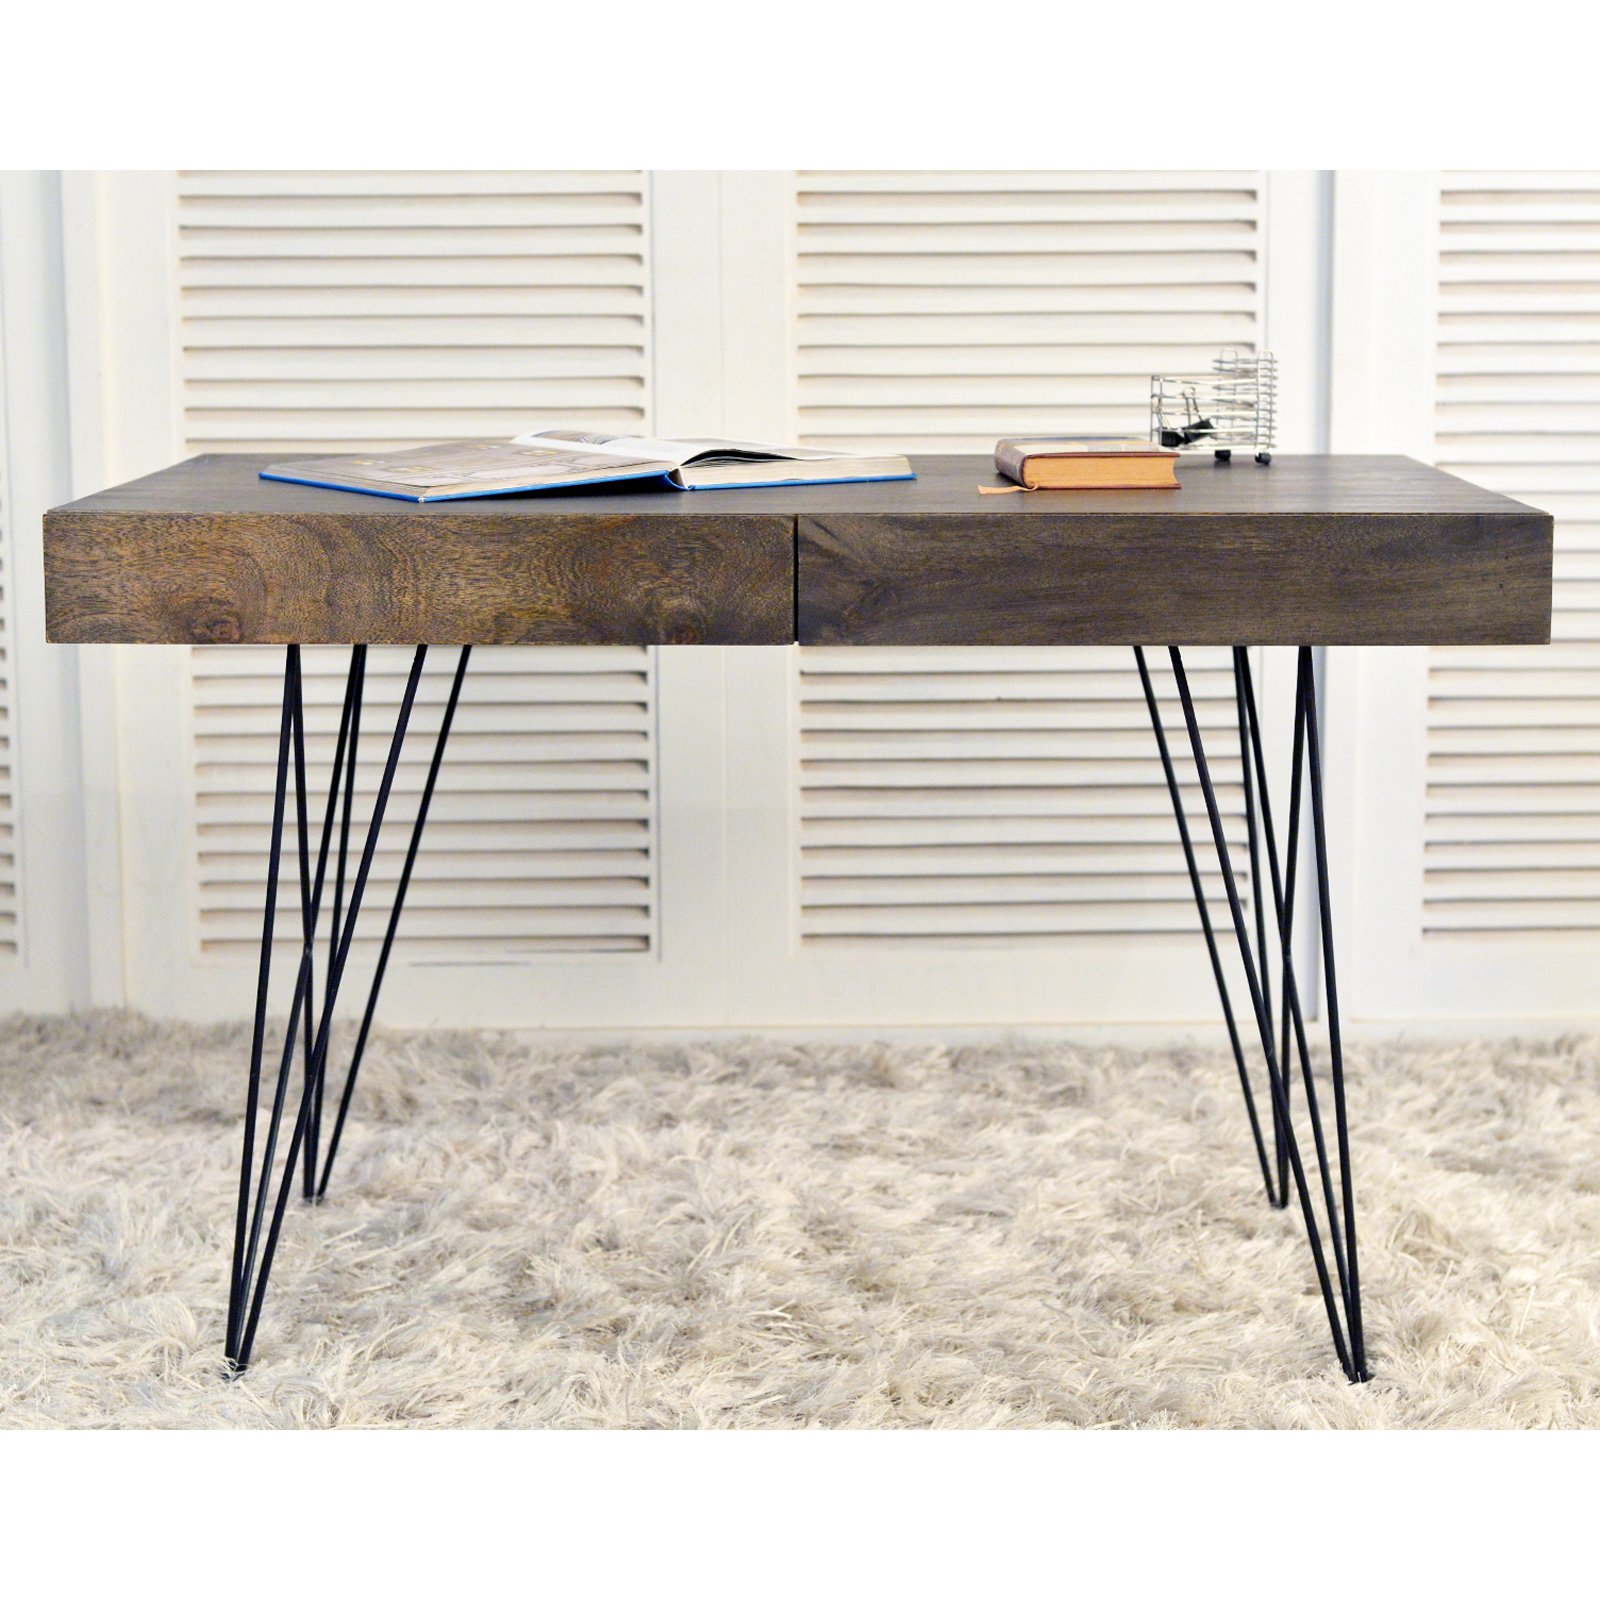 Coast to Coast Mid-Century 2 Drawer Writing Desk - Smokey Gray